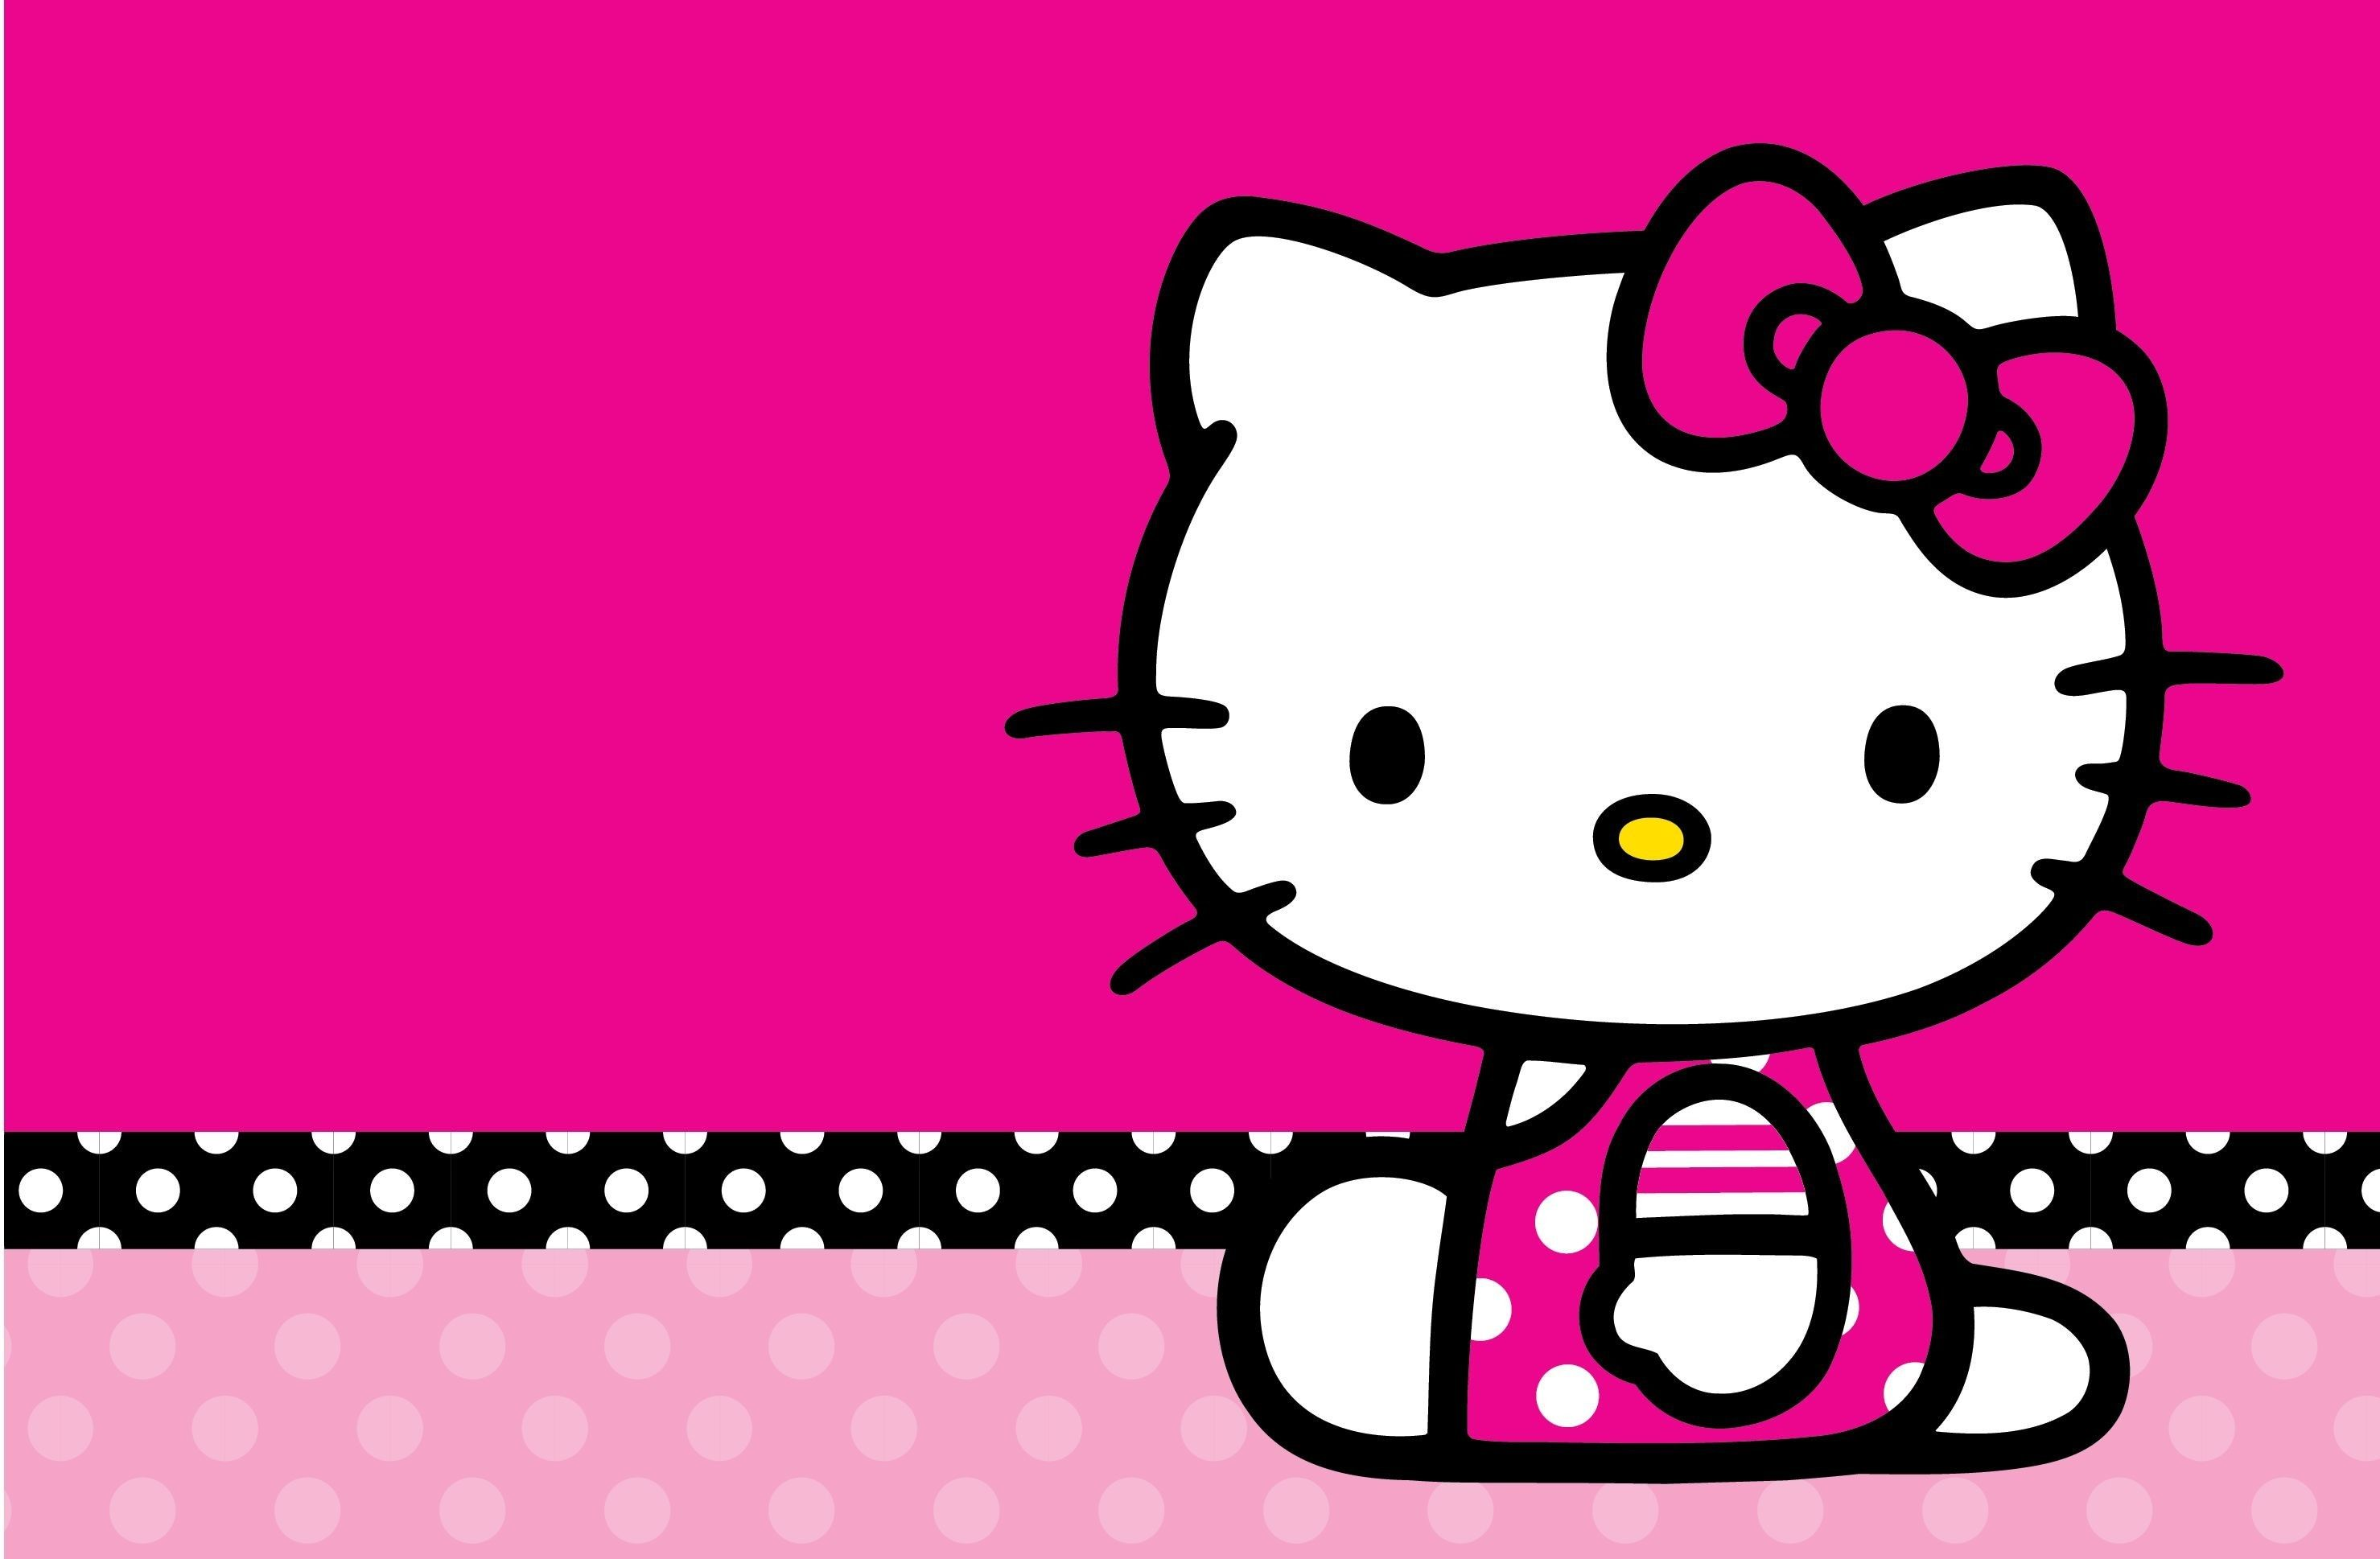 Hello Kitty Pink And Black Love Wallpaper Desktop Background Yodobi Hello Kitty Backgrounds Hello Kitty Wallpaper Hd Hello Kitty Pictures